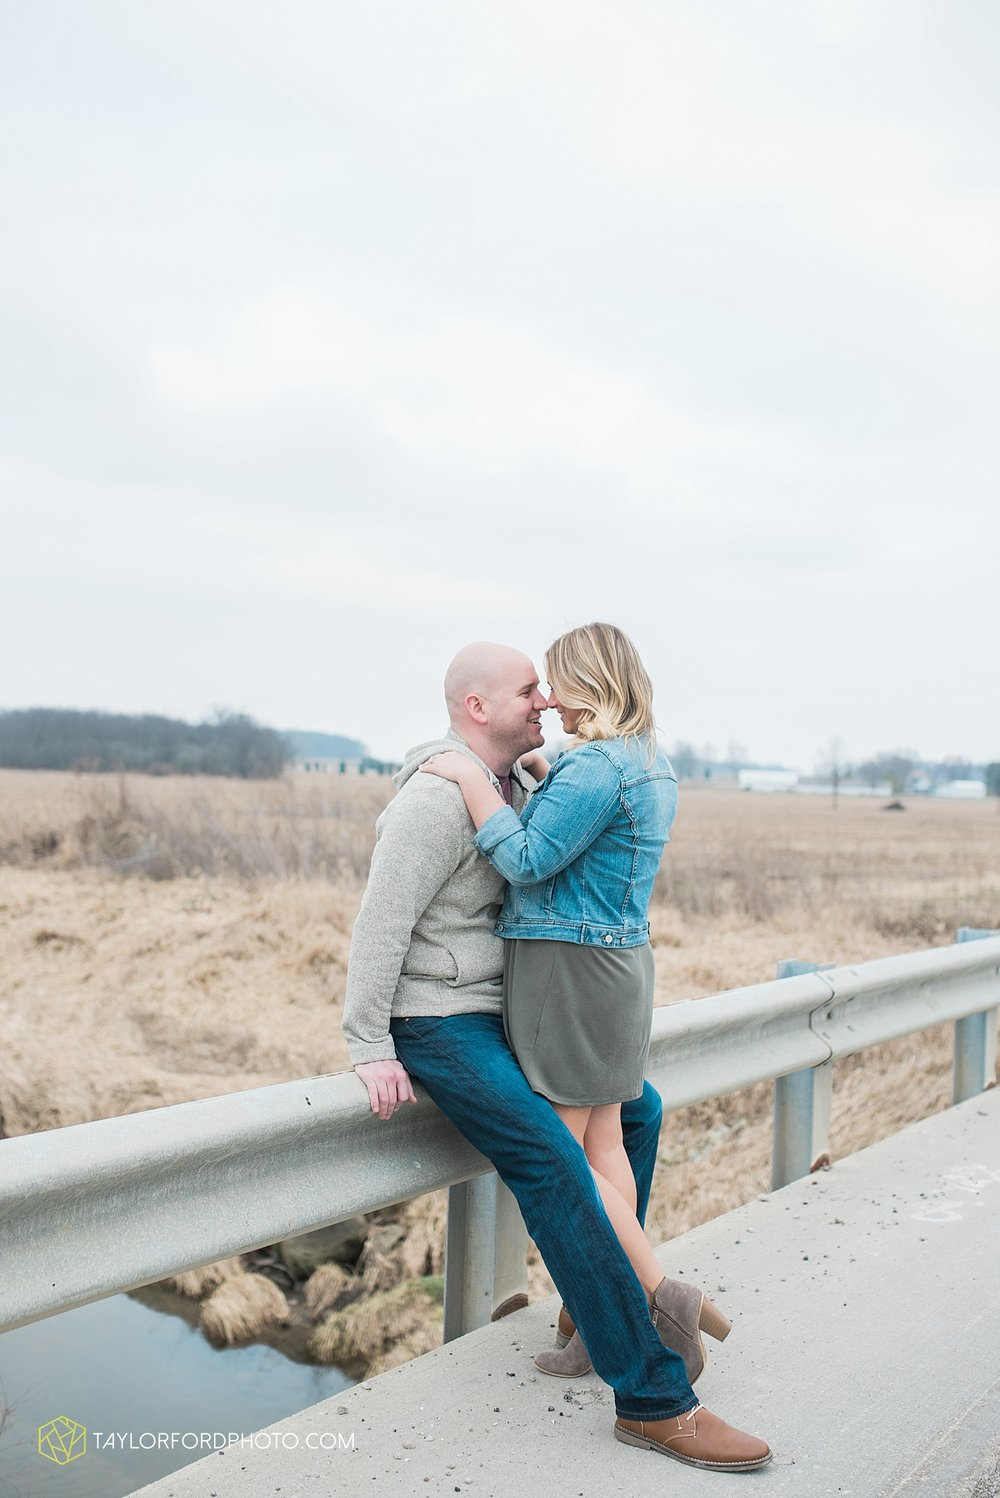 indianapolis_indiana_engagement_wedding_fort_wayne_indiana_taylor_ford_photography_1372.jpg